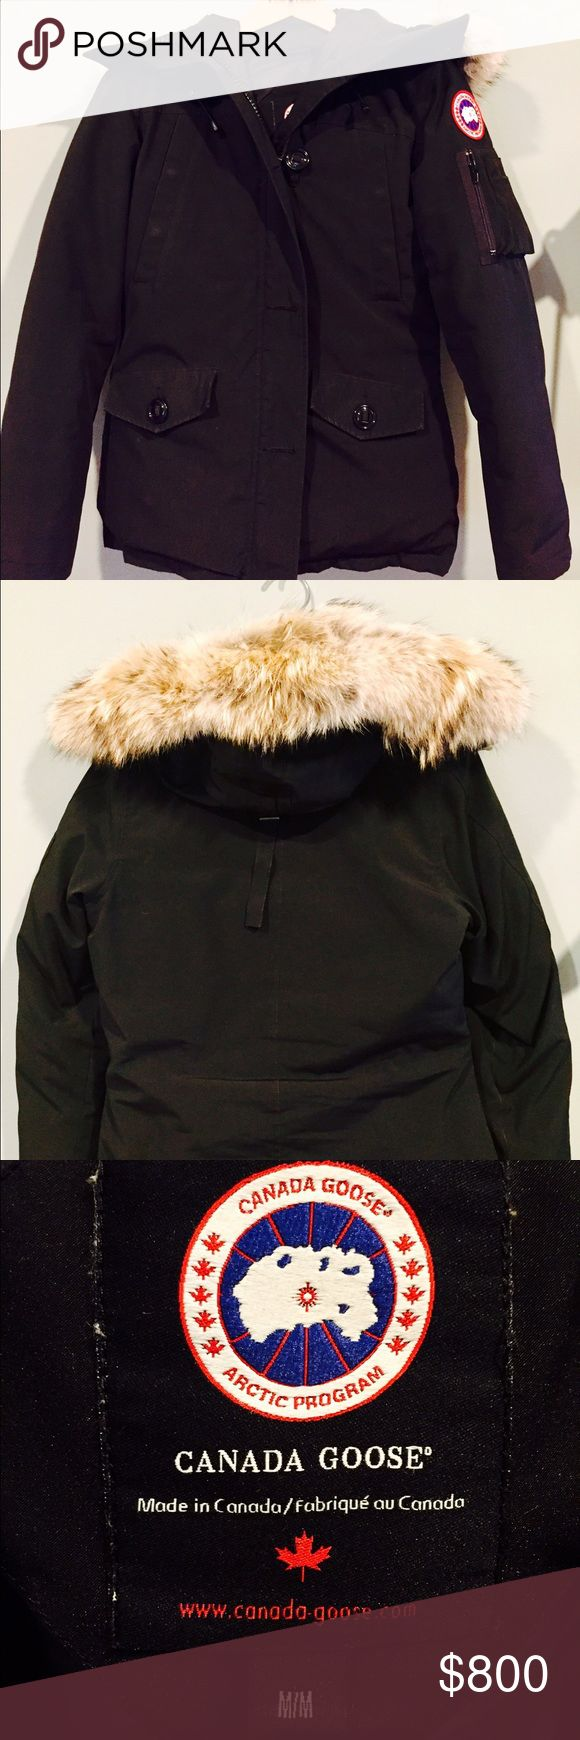 Canada Goose Black Montebello Parka Women's Medium Real Canada Goose Montebello Parka in size Medium. Used. Worn for only one year. In nearly mint condition. Canada Goose Jackets & Coats Puffers